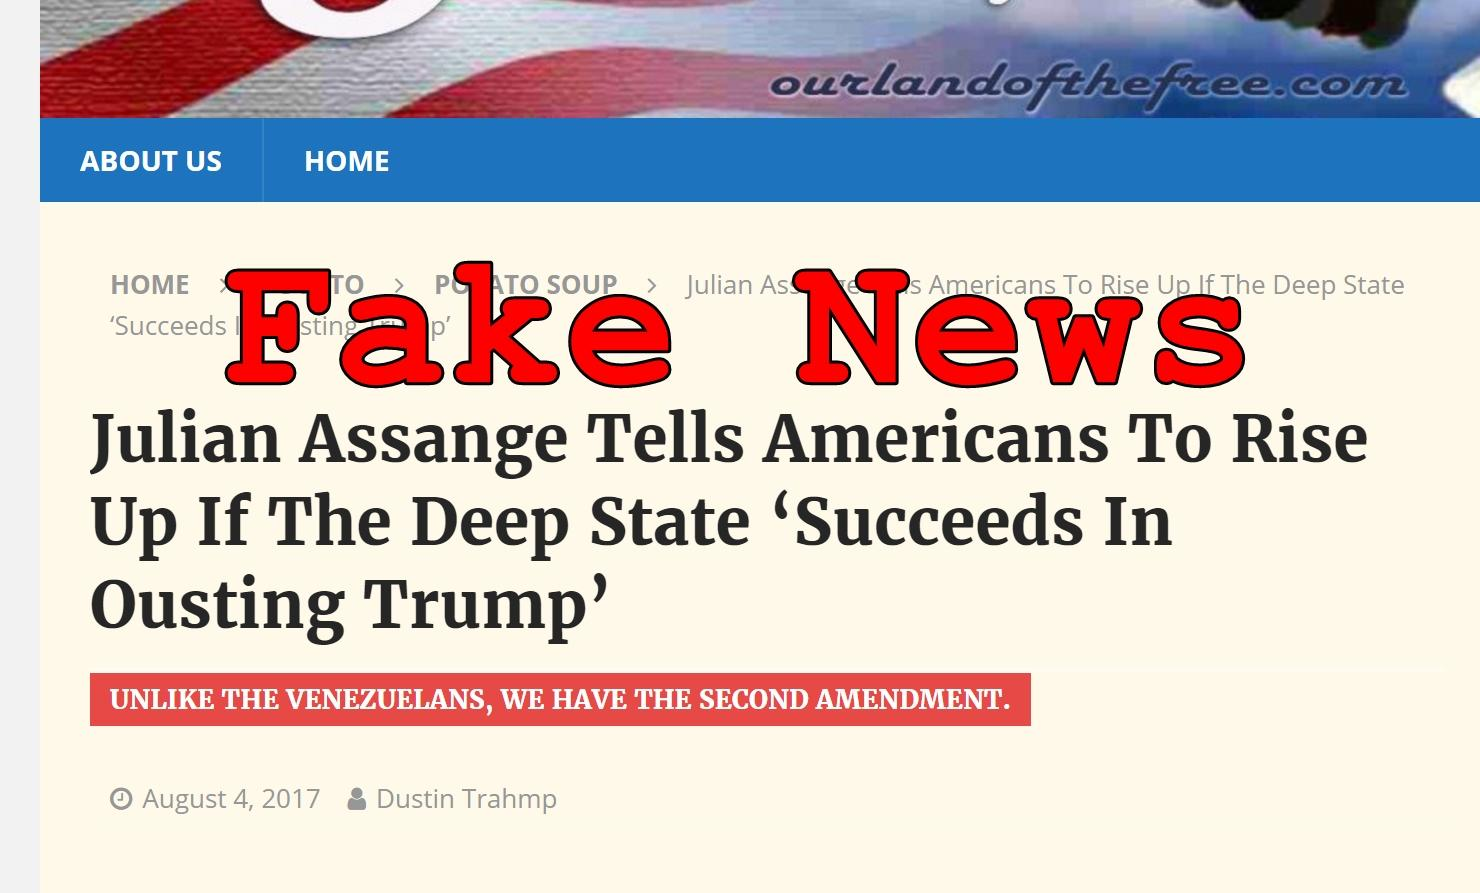 Fake News: Julian Assange Did NOT Tell Americans To Rise Up If The Deep State Succeeds In Ousting Trump